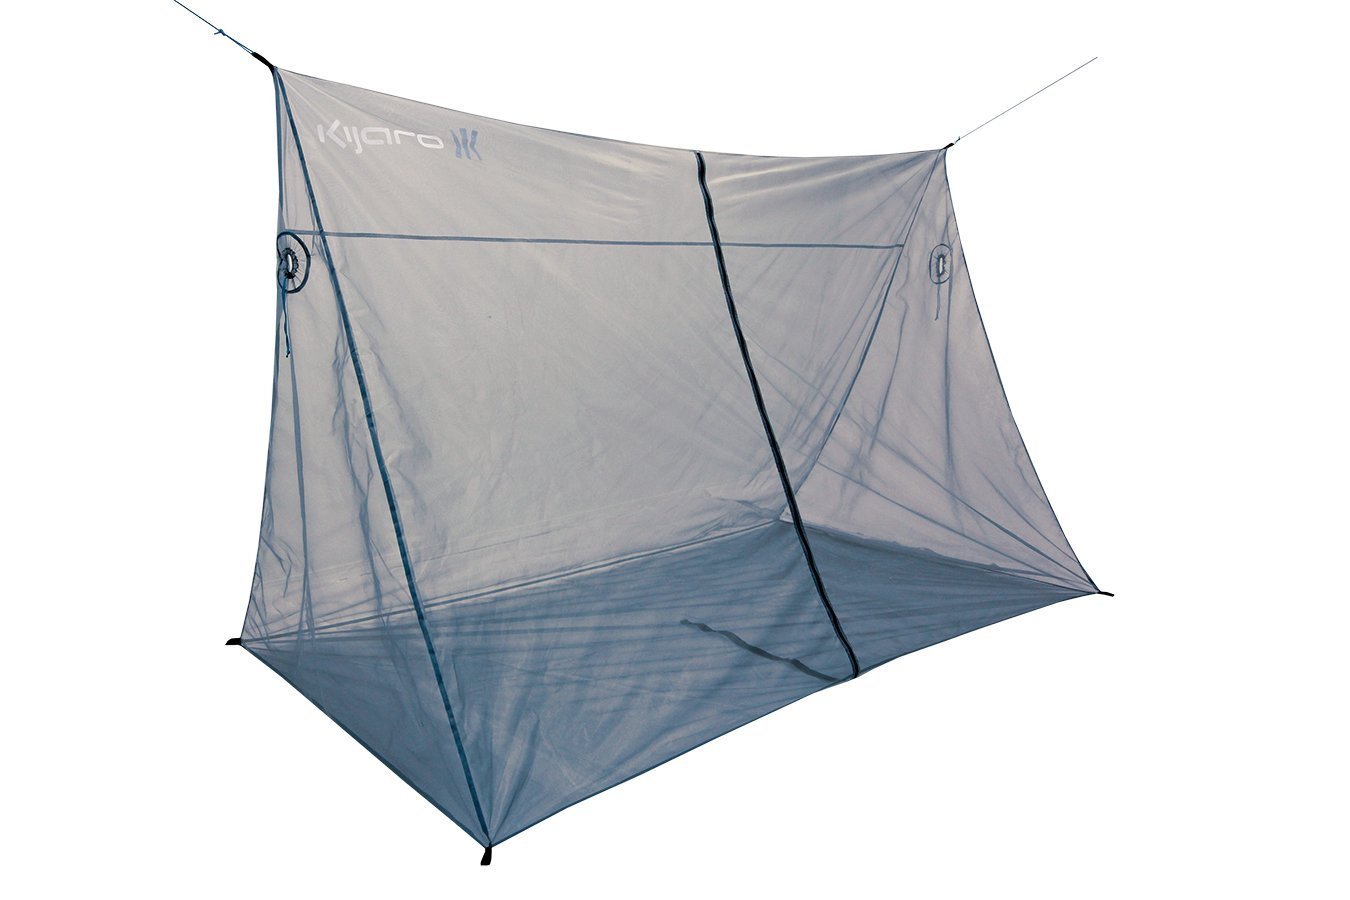 Kijaro Hammock Bug Mosquito Jungle Net with No-See Um Mesh for 360-Degree Protection, Quick Easy Setup by Kijaro